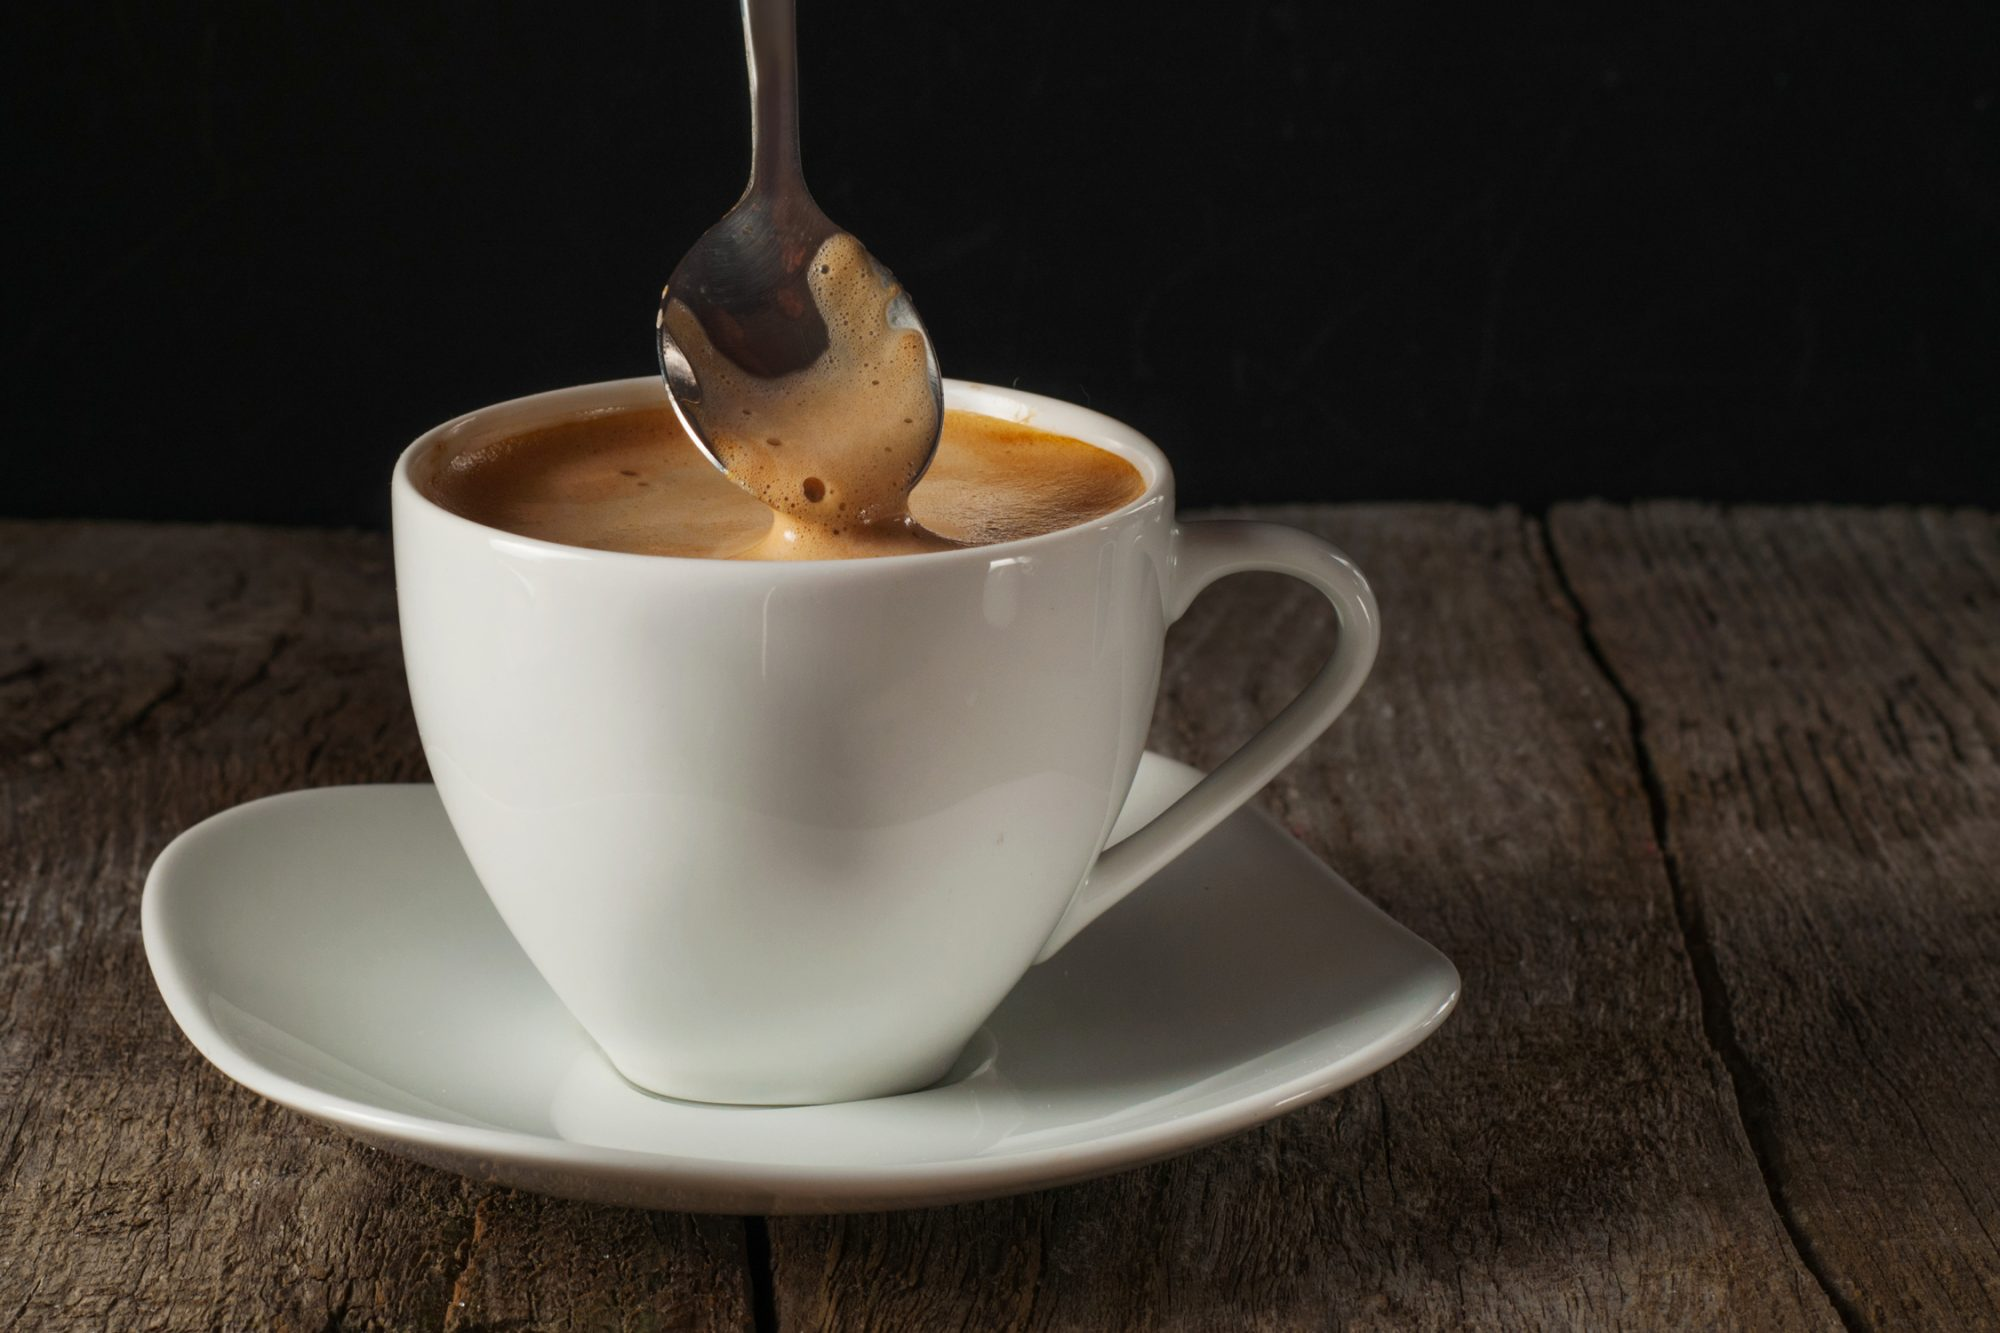 Why Coffee Experts Think You Should Scrape the Crema Off Your Espresso